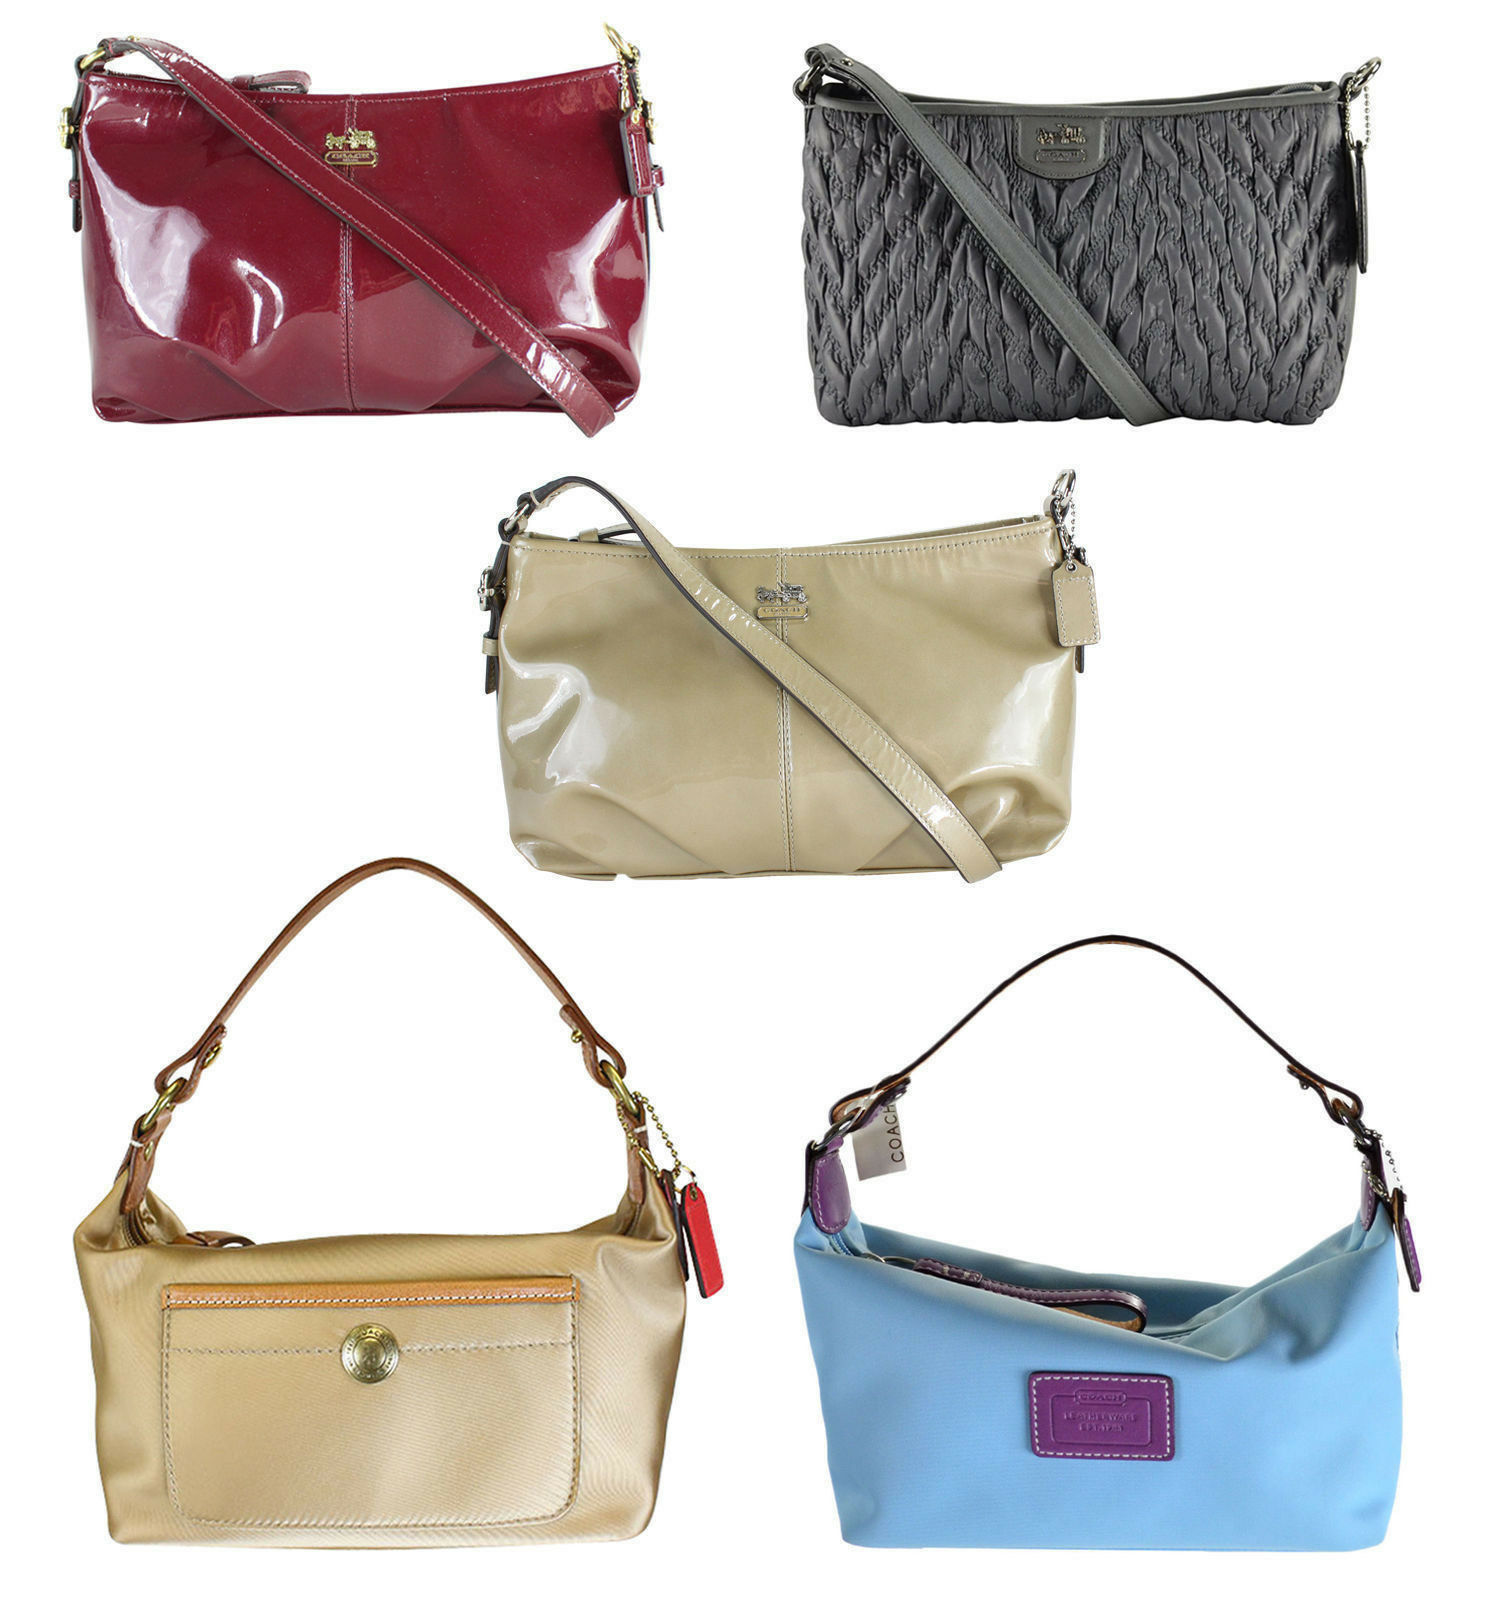 New Coach Madison Patent Leather//Nylon Pouch Handbag 46619 8370